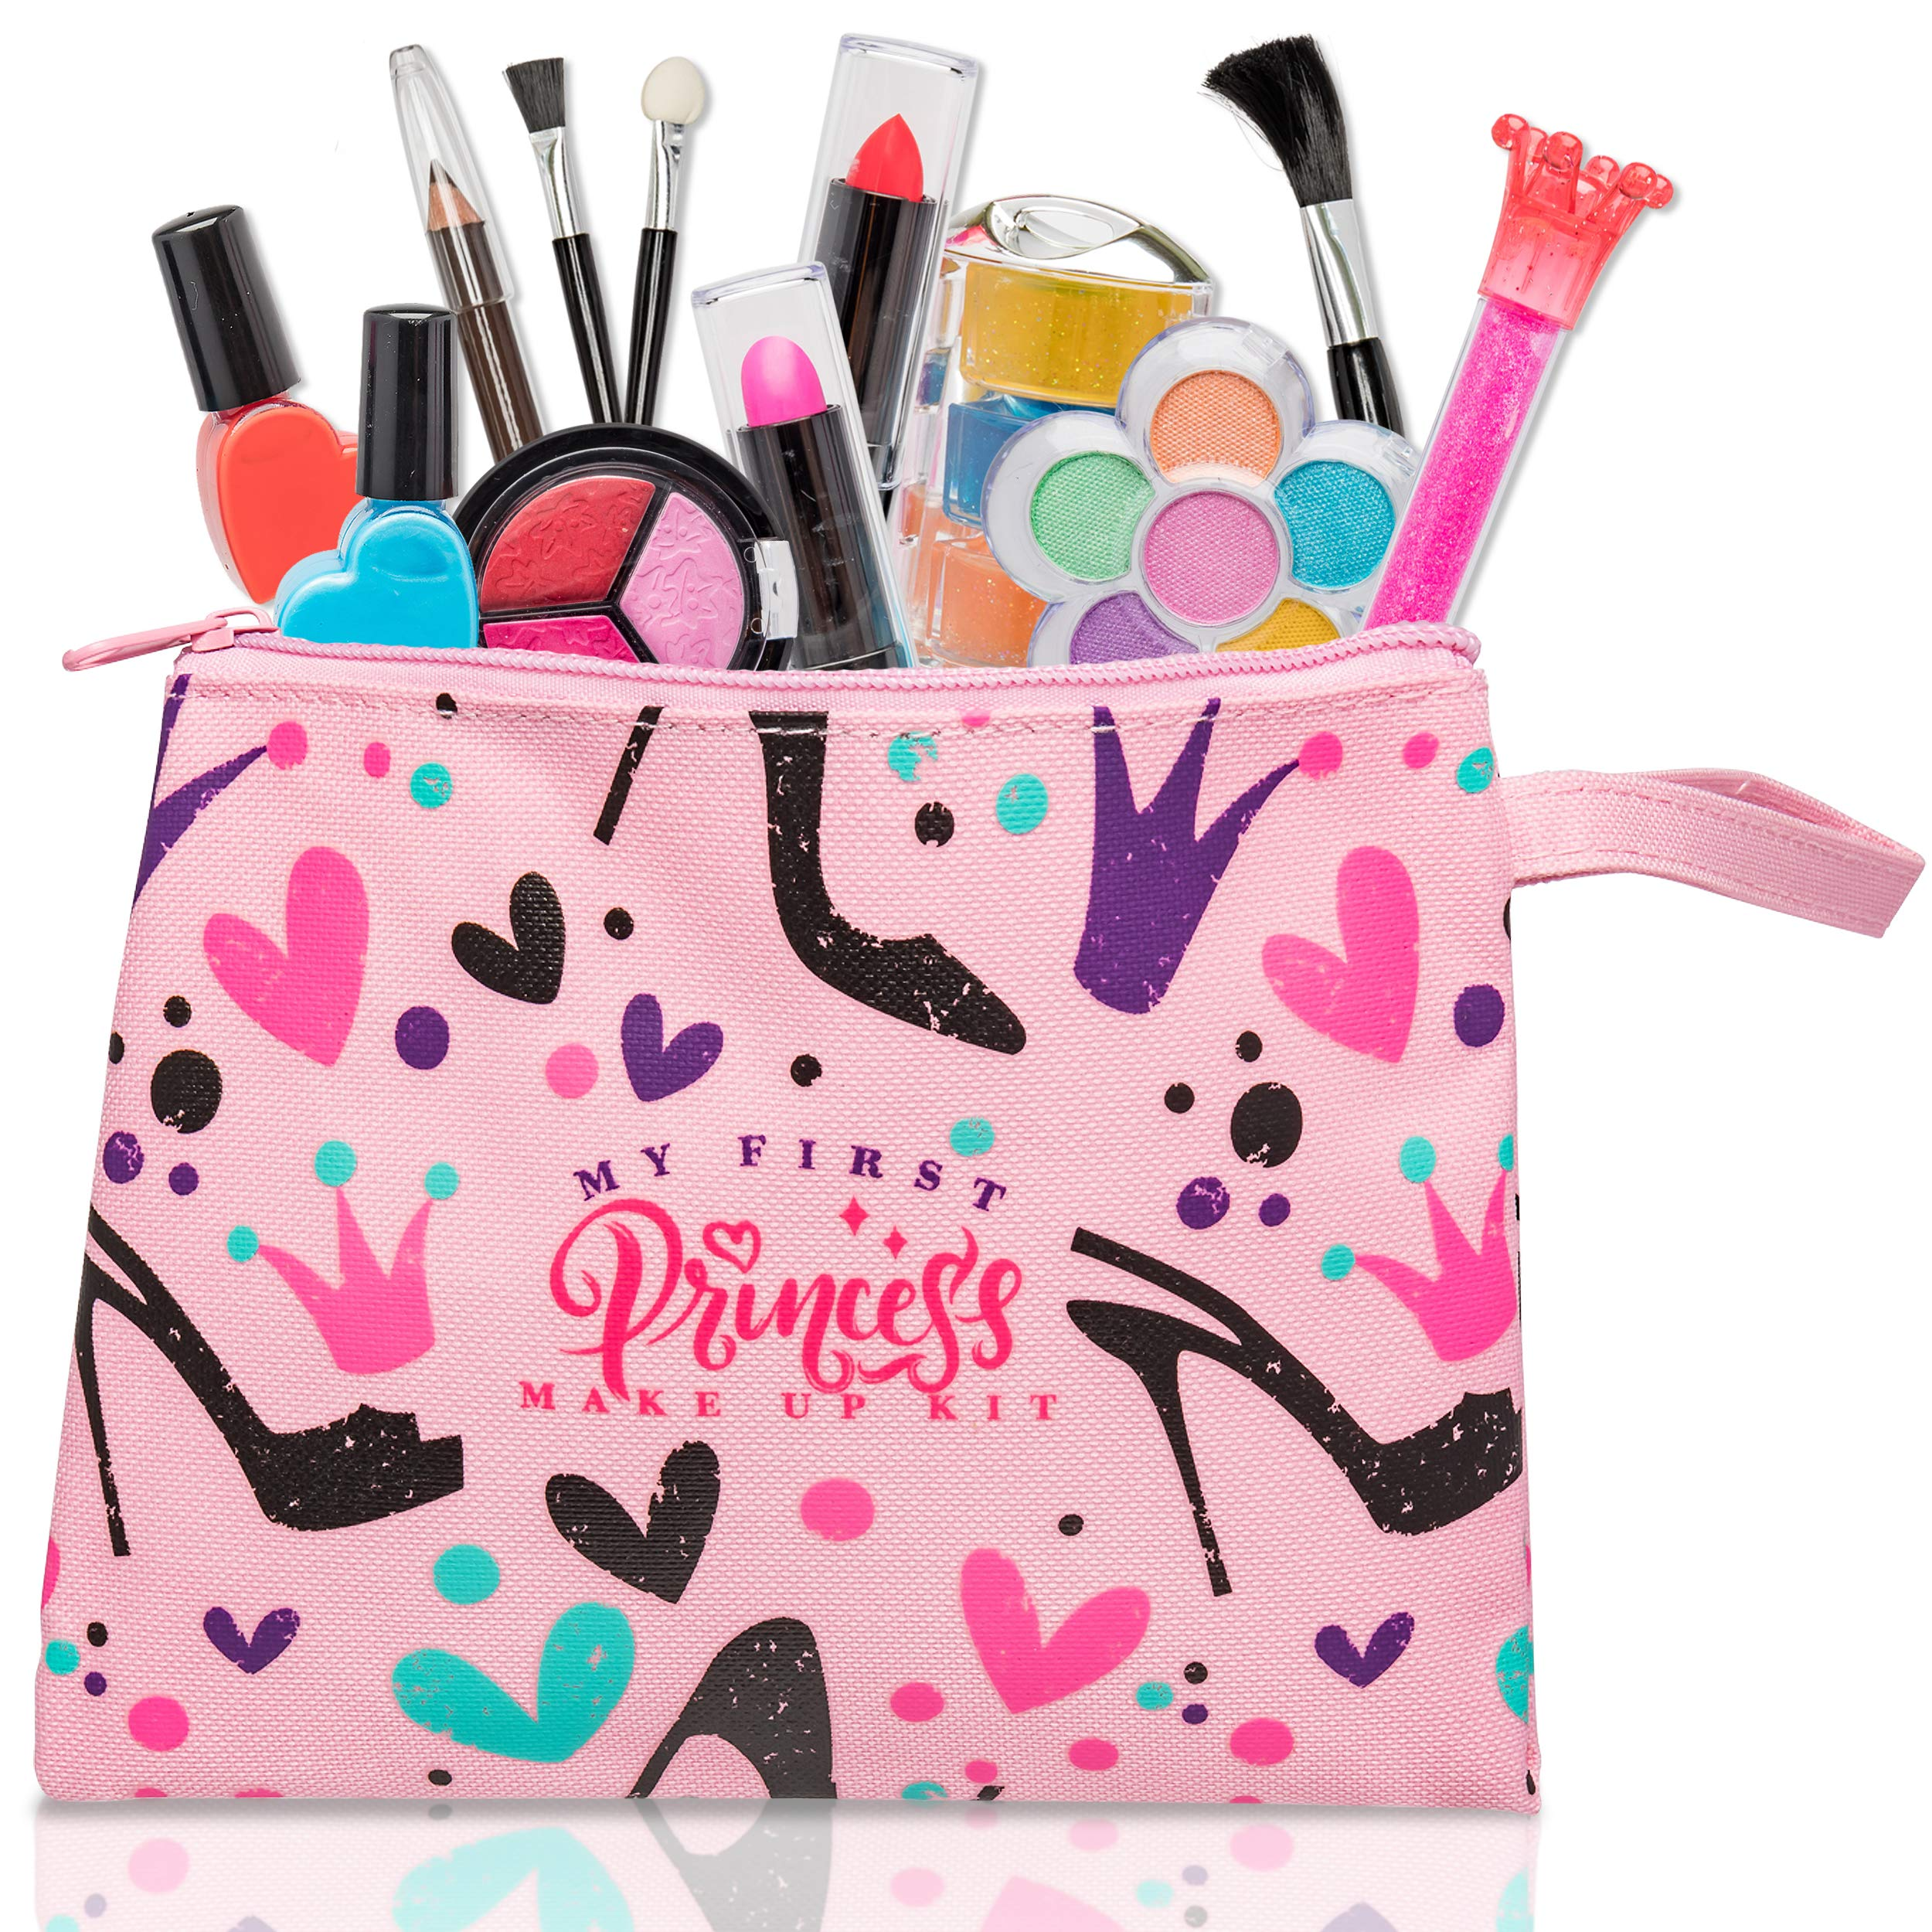 My First Princess Make Up Kit - 7 Pc Kids Makeup Set - Washable Pretend  Makeup For Girls - These Makeup Toys for Girls Include Everything Your